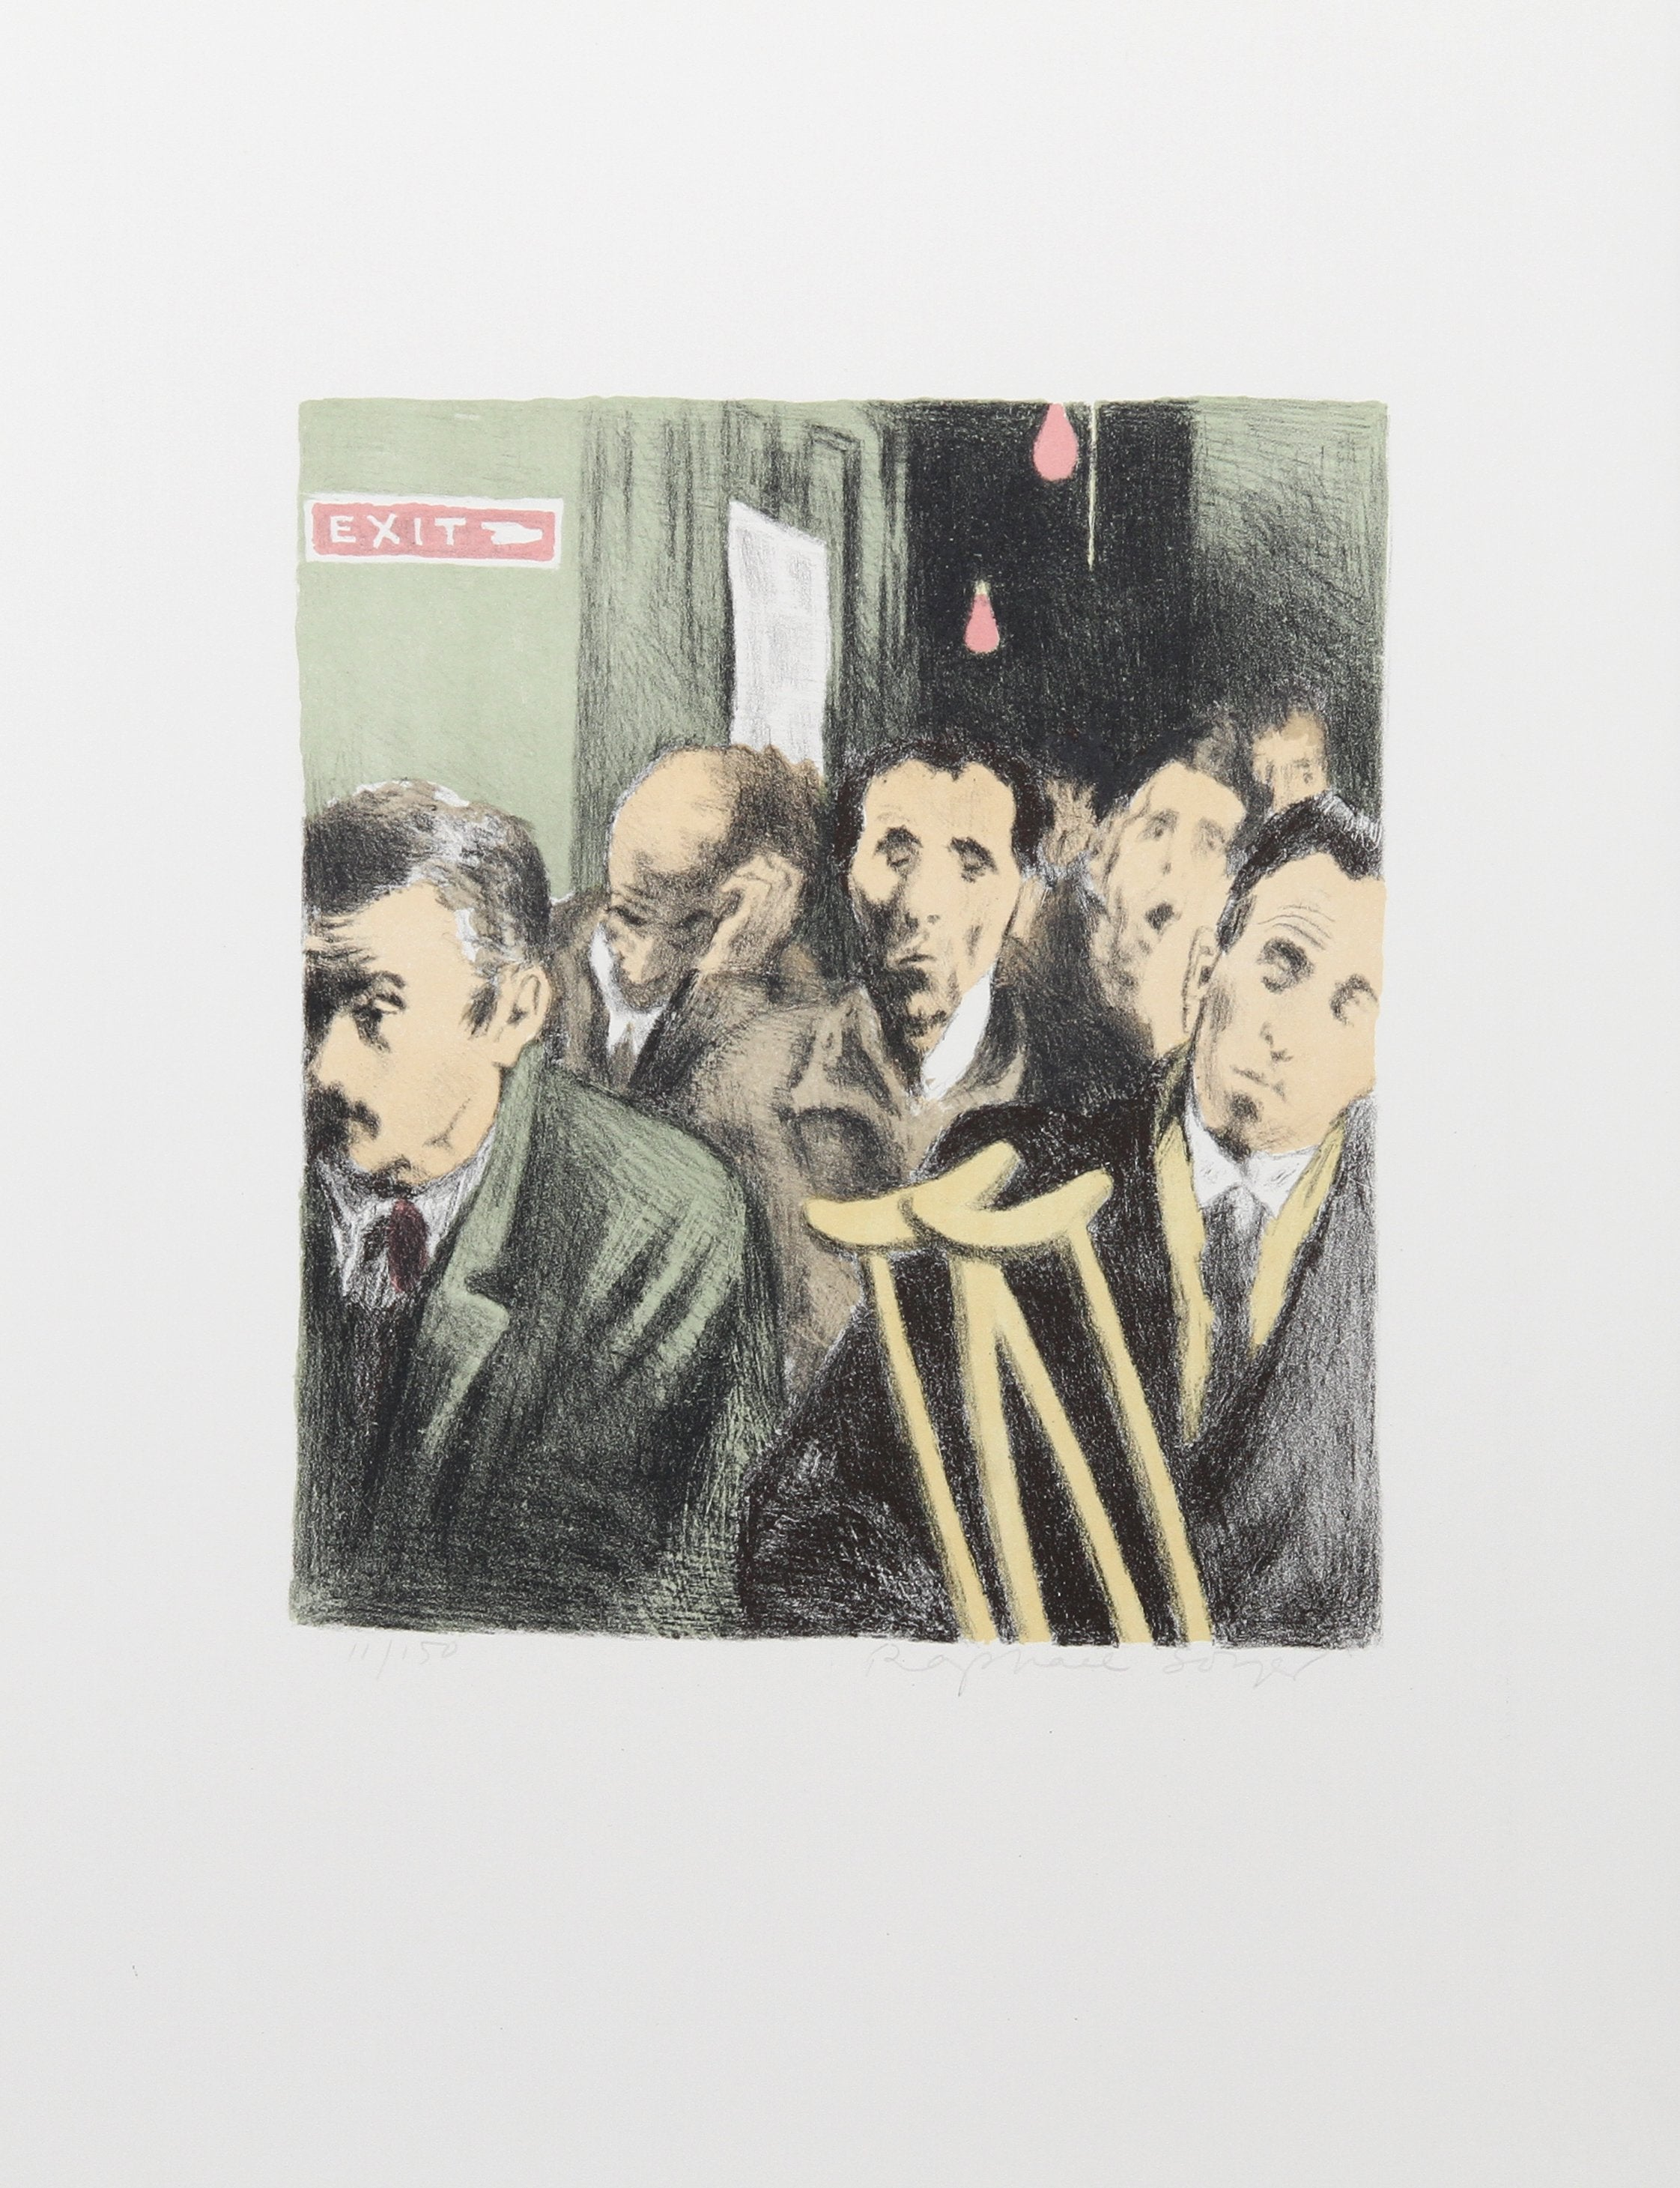 Raphael Soyer, Subway Exit from the Memories Portfolio Lithograph - RoGallery